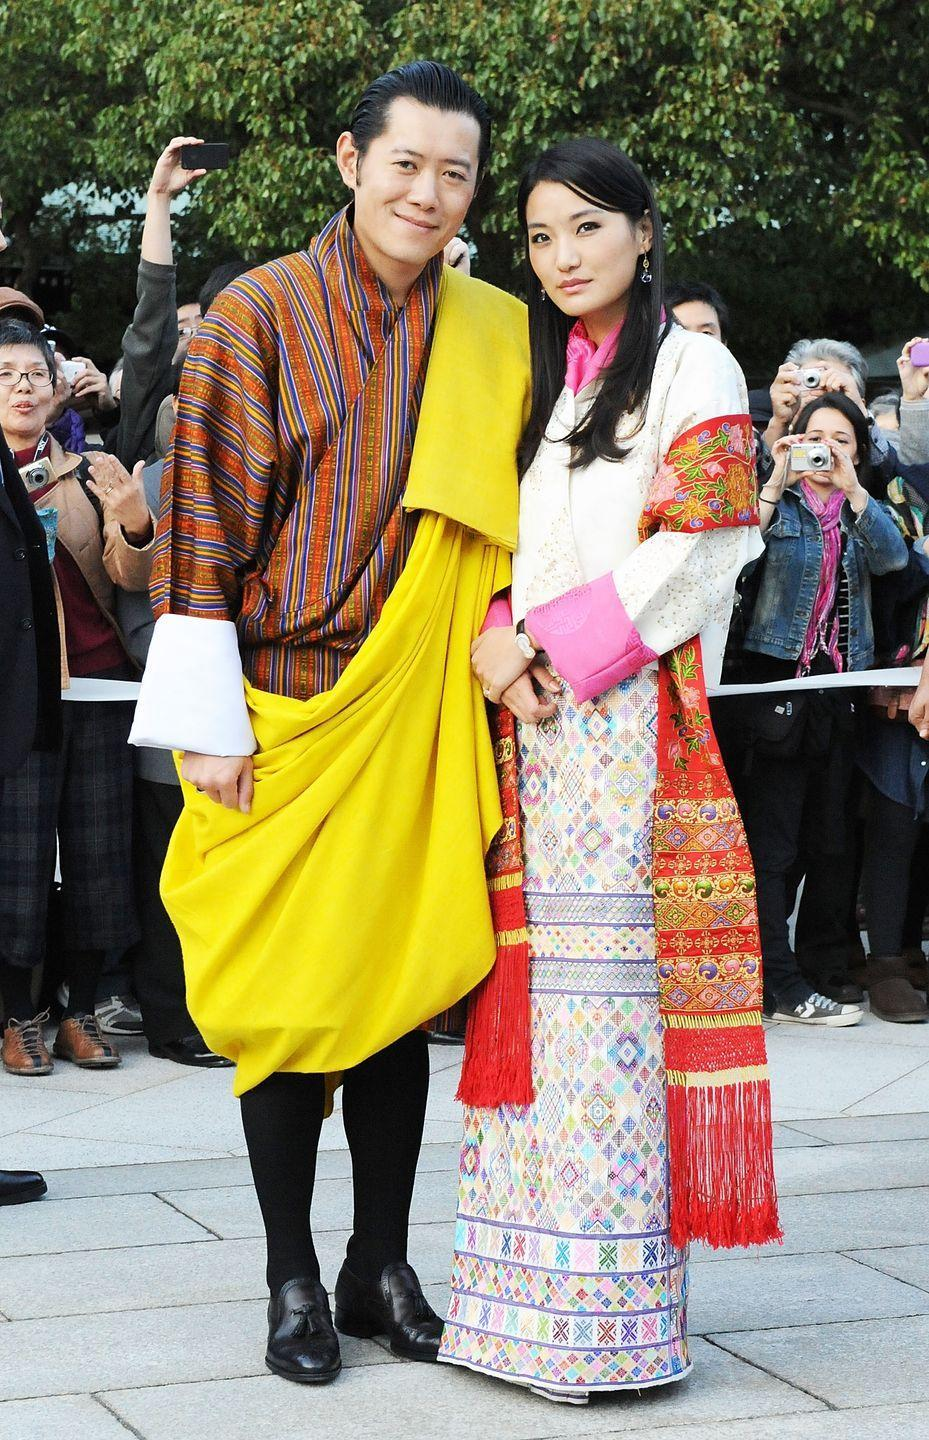 <p>After becoming the youngest Queen in the world at age 21, Queen Jetsun Pema of Bhutan quickly established herself as a global fashion icon. Before getting married, Jetsun Pema graduated from Regent's College London with a degree in international relations—the perfect major for a future queen. </p>